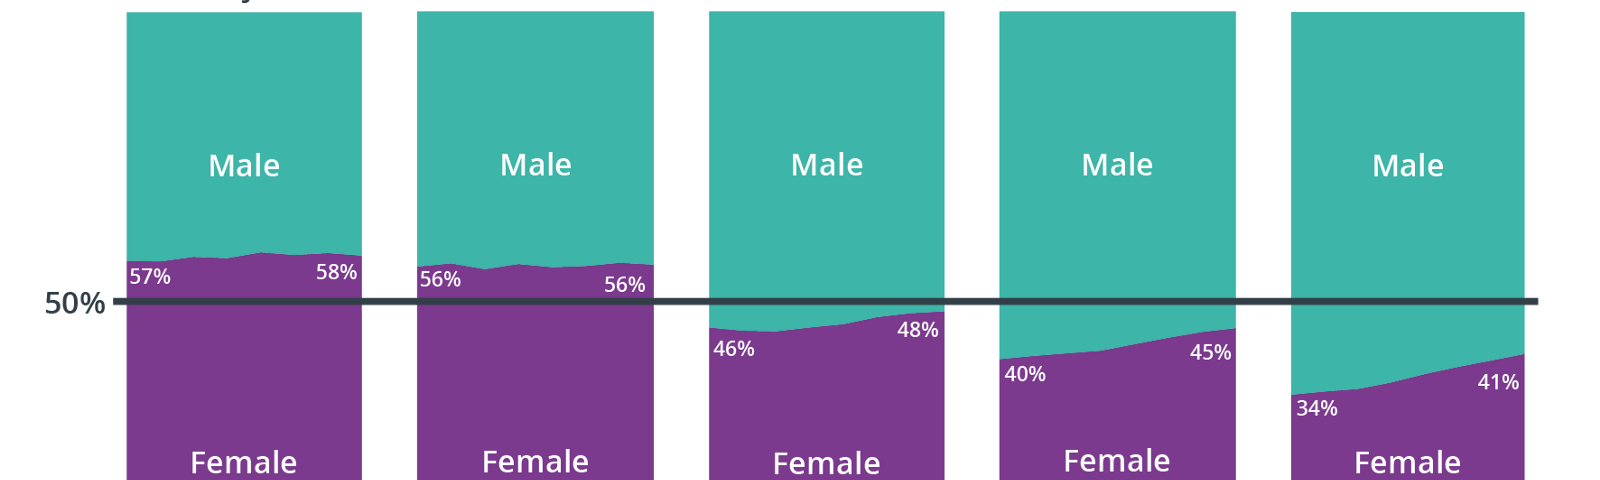 A chart showing the gender balance at different grades across the civil service, improving over time, but still not balanced.